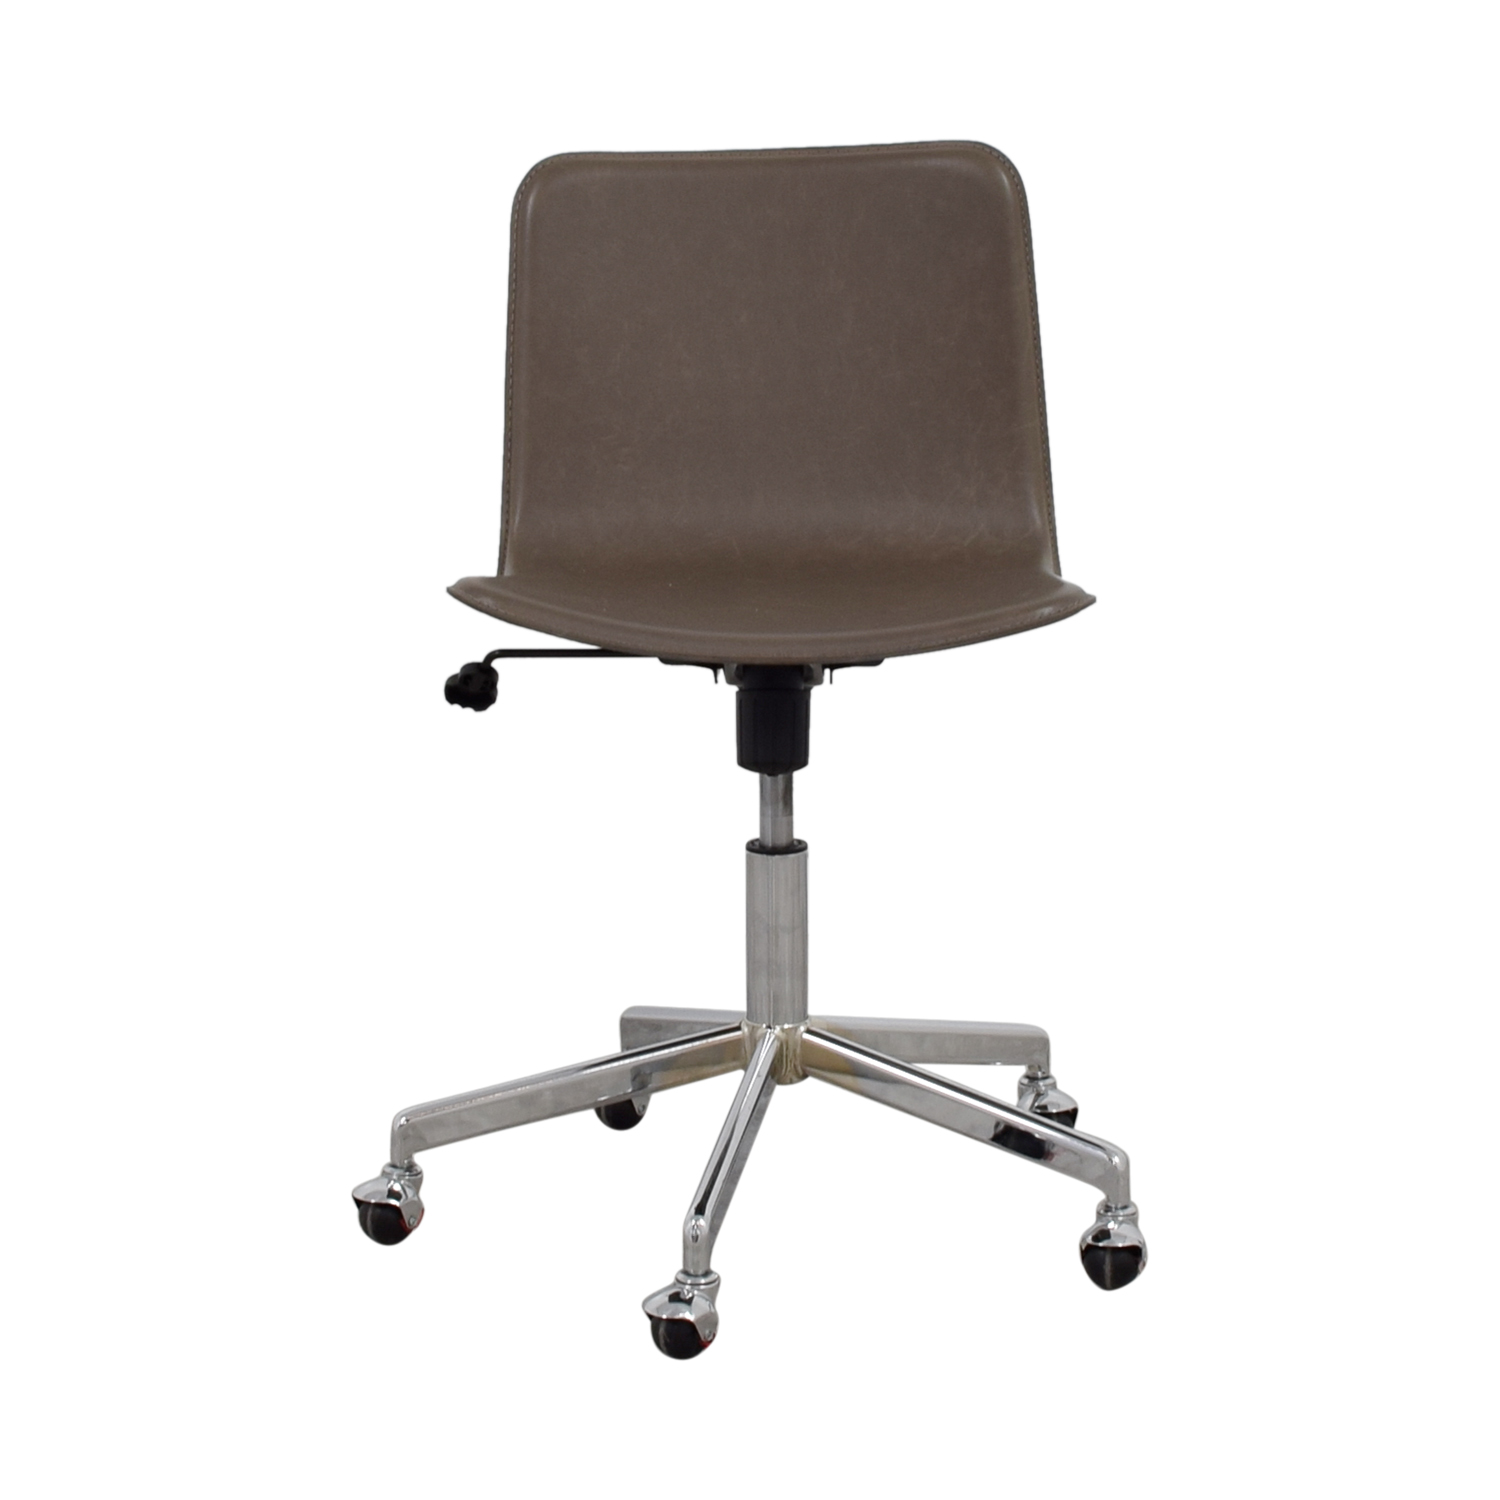 CB2 Grey Leather Adjustable Office Chair on Castors / Chairs